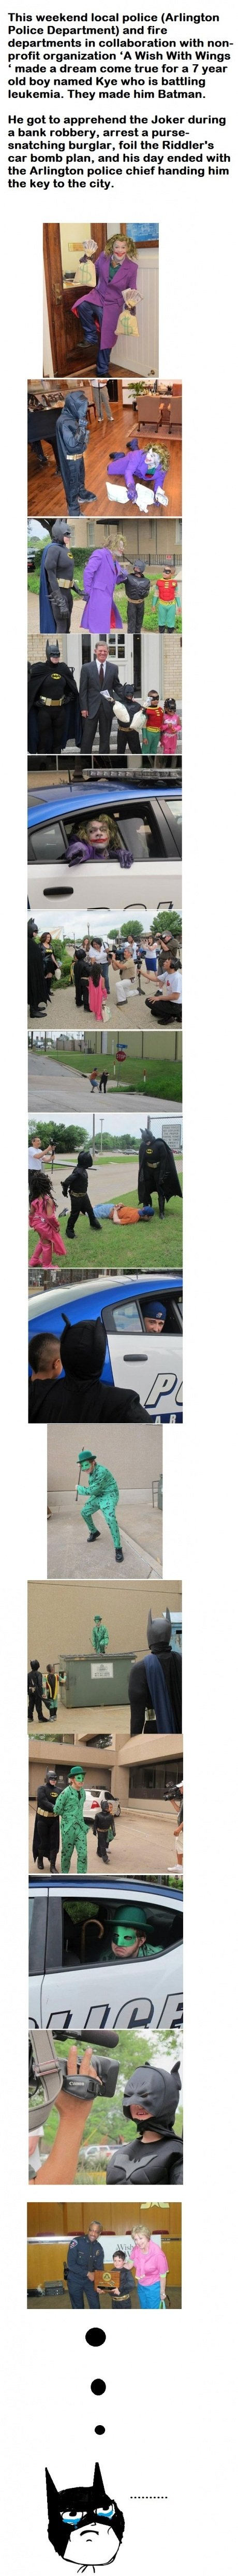 Bad circumstances - awesome day. Im 20 years old, and i want to try this!!. This weekend local police (Arlington Police Department) and tirty departments in col